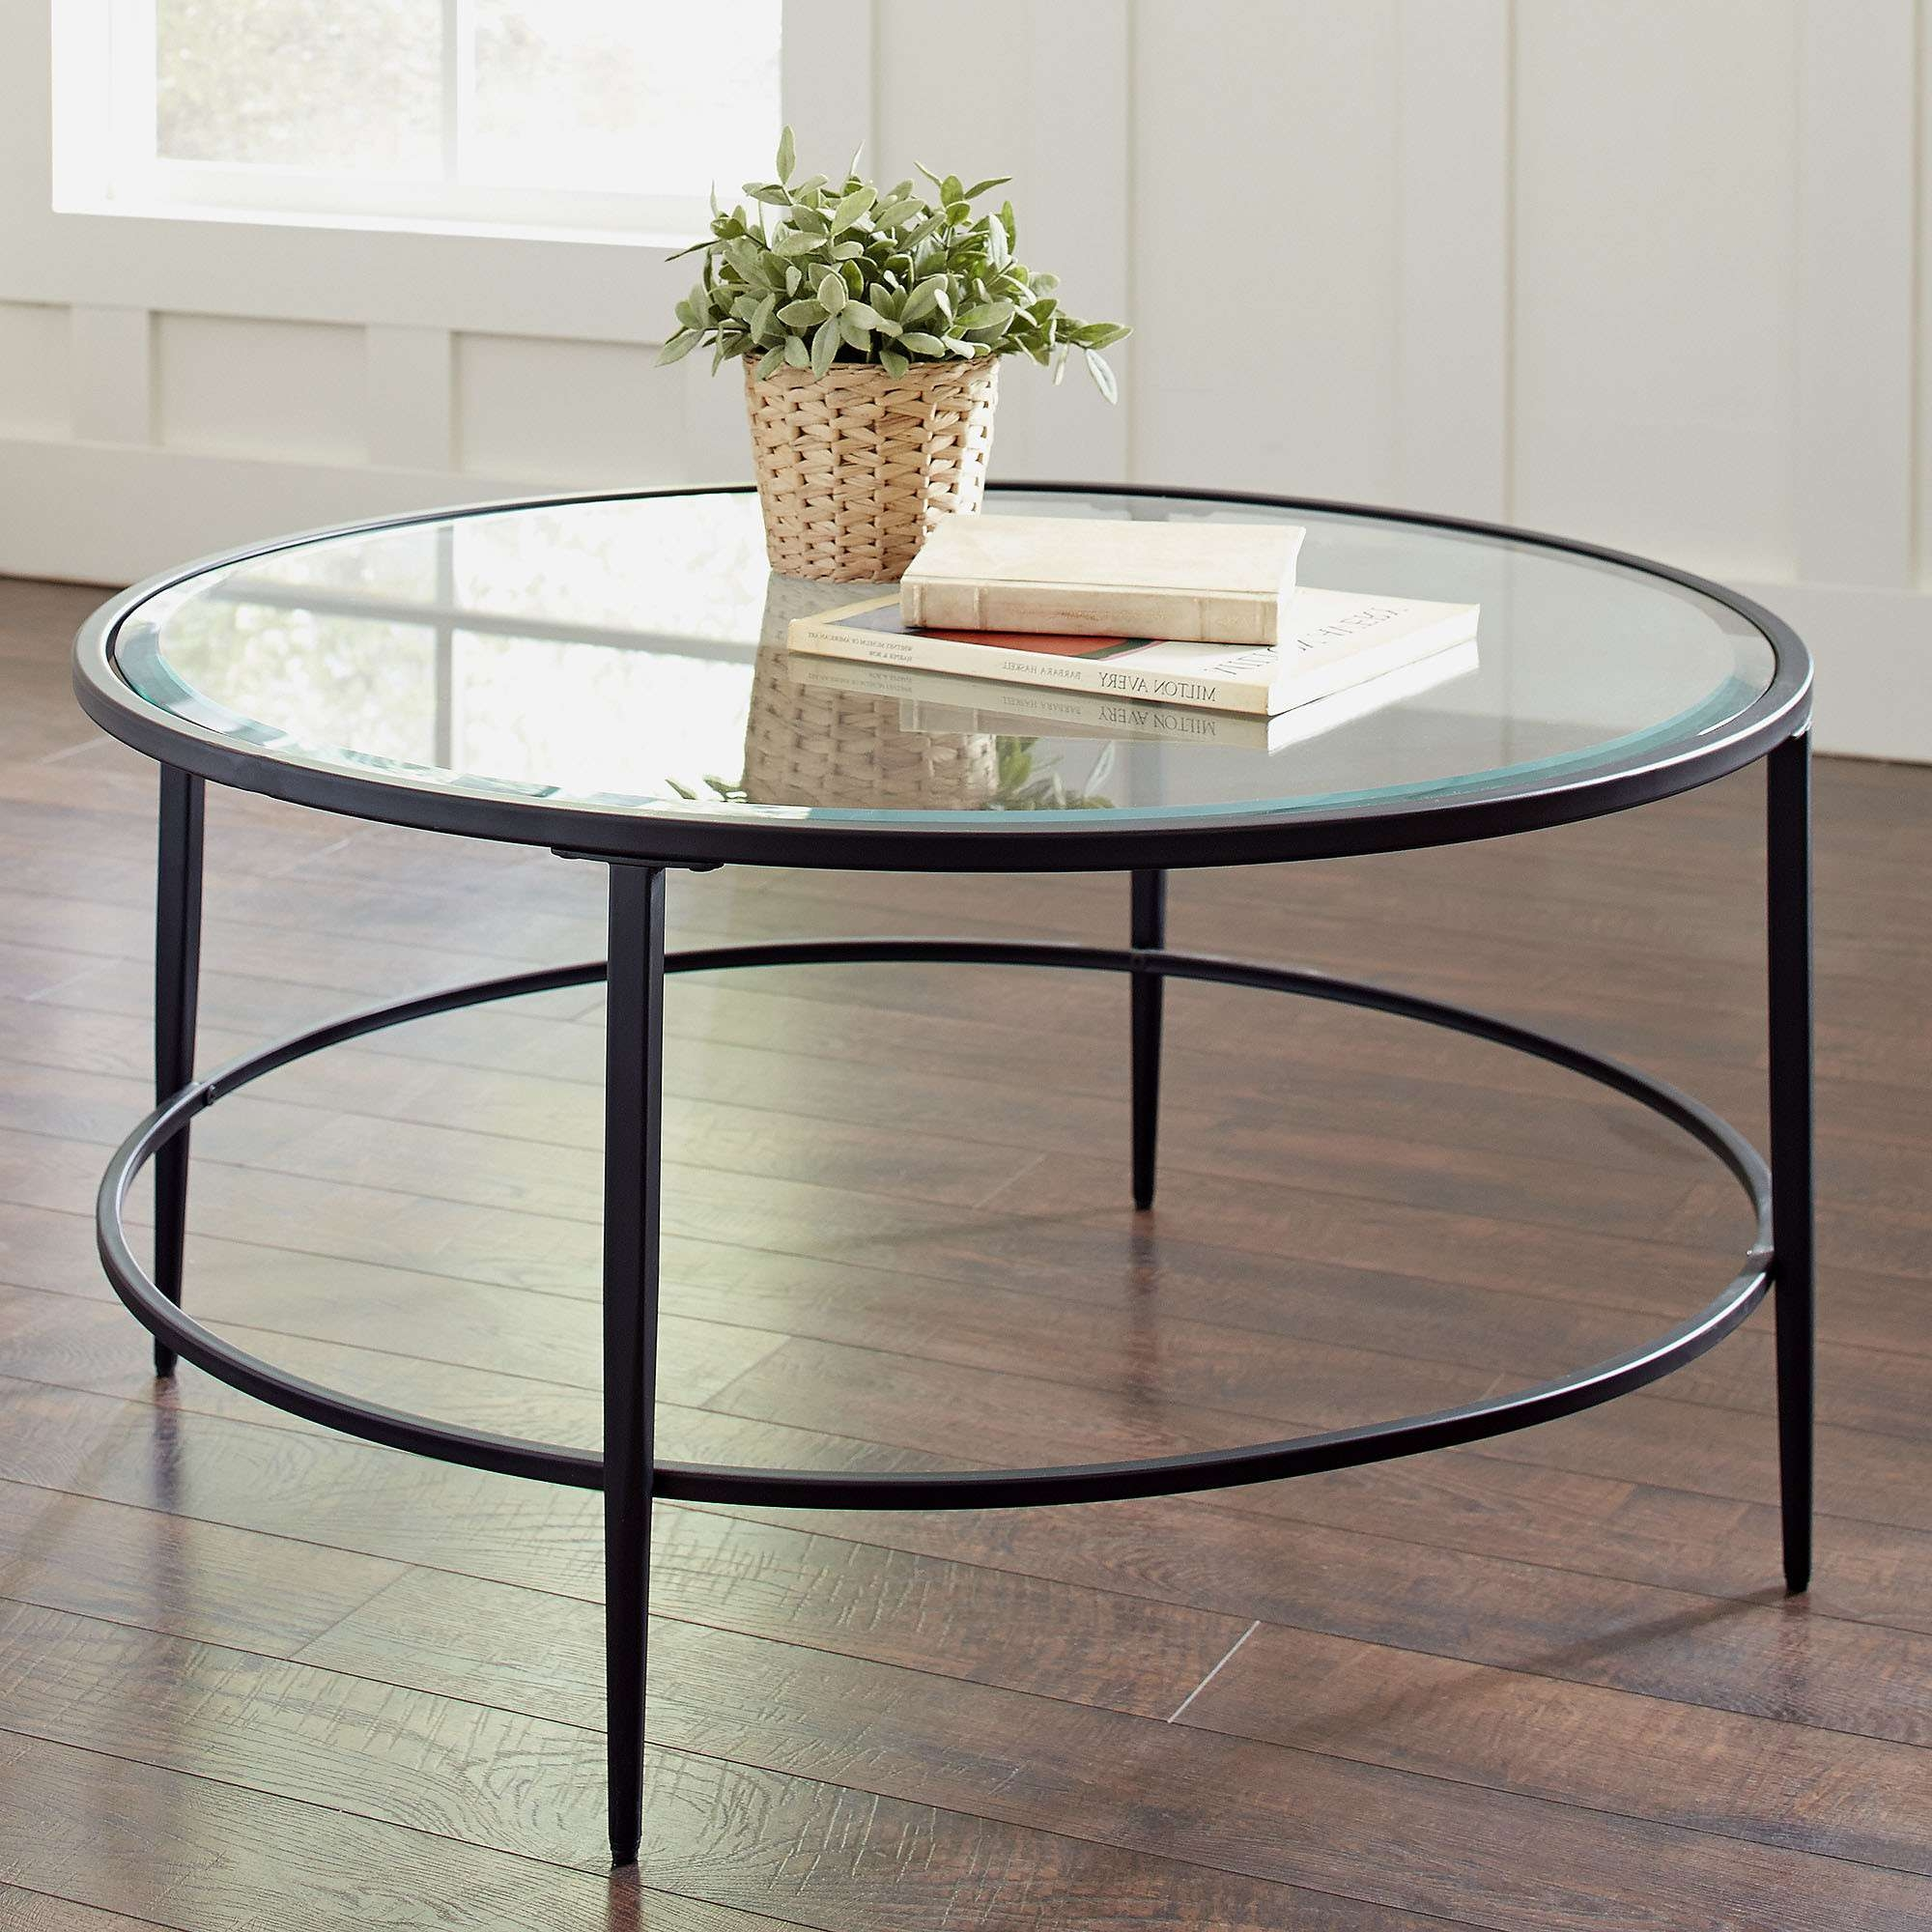 Preferred Large Round Low Coffee Tables Pertaining To Coffee Table : Awesome Hammered Metal Coffee Table Large Round (View 17 of 20)